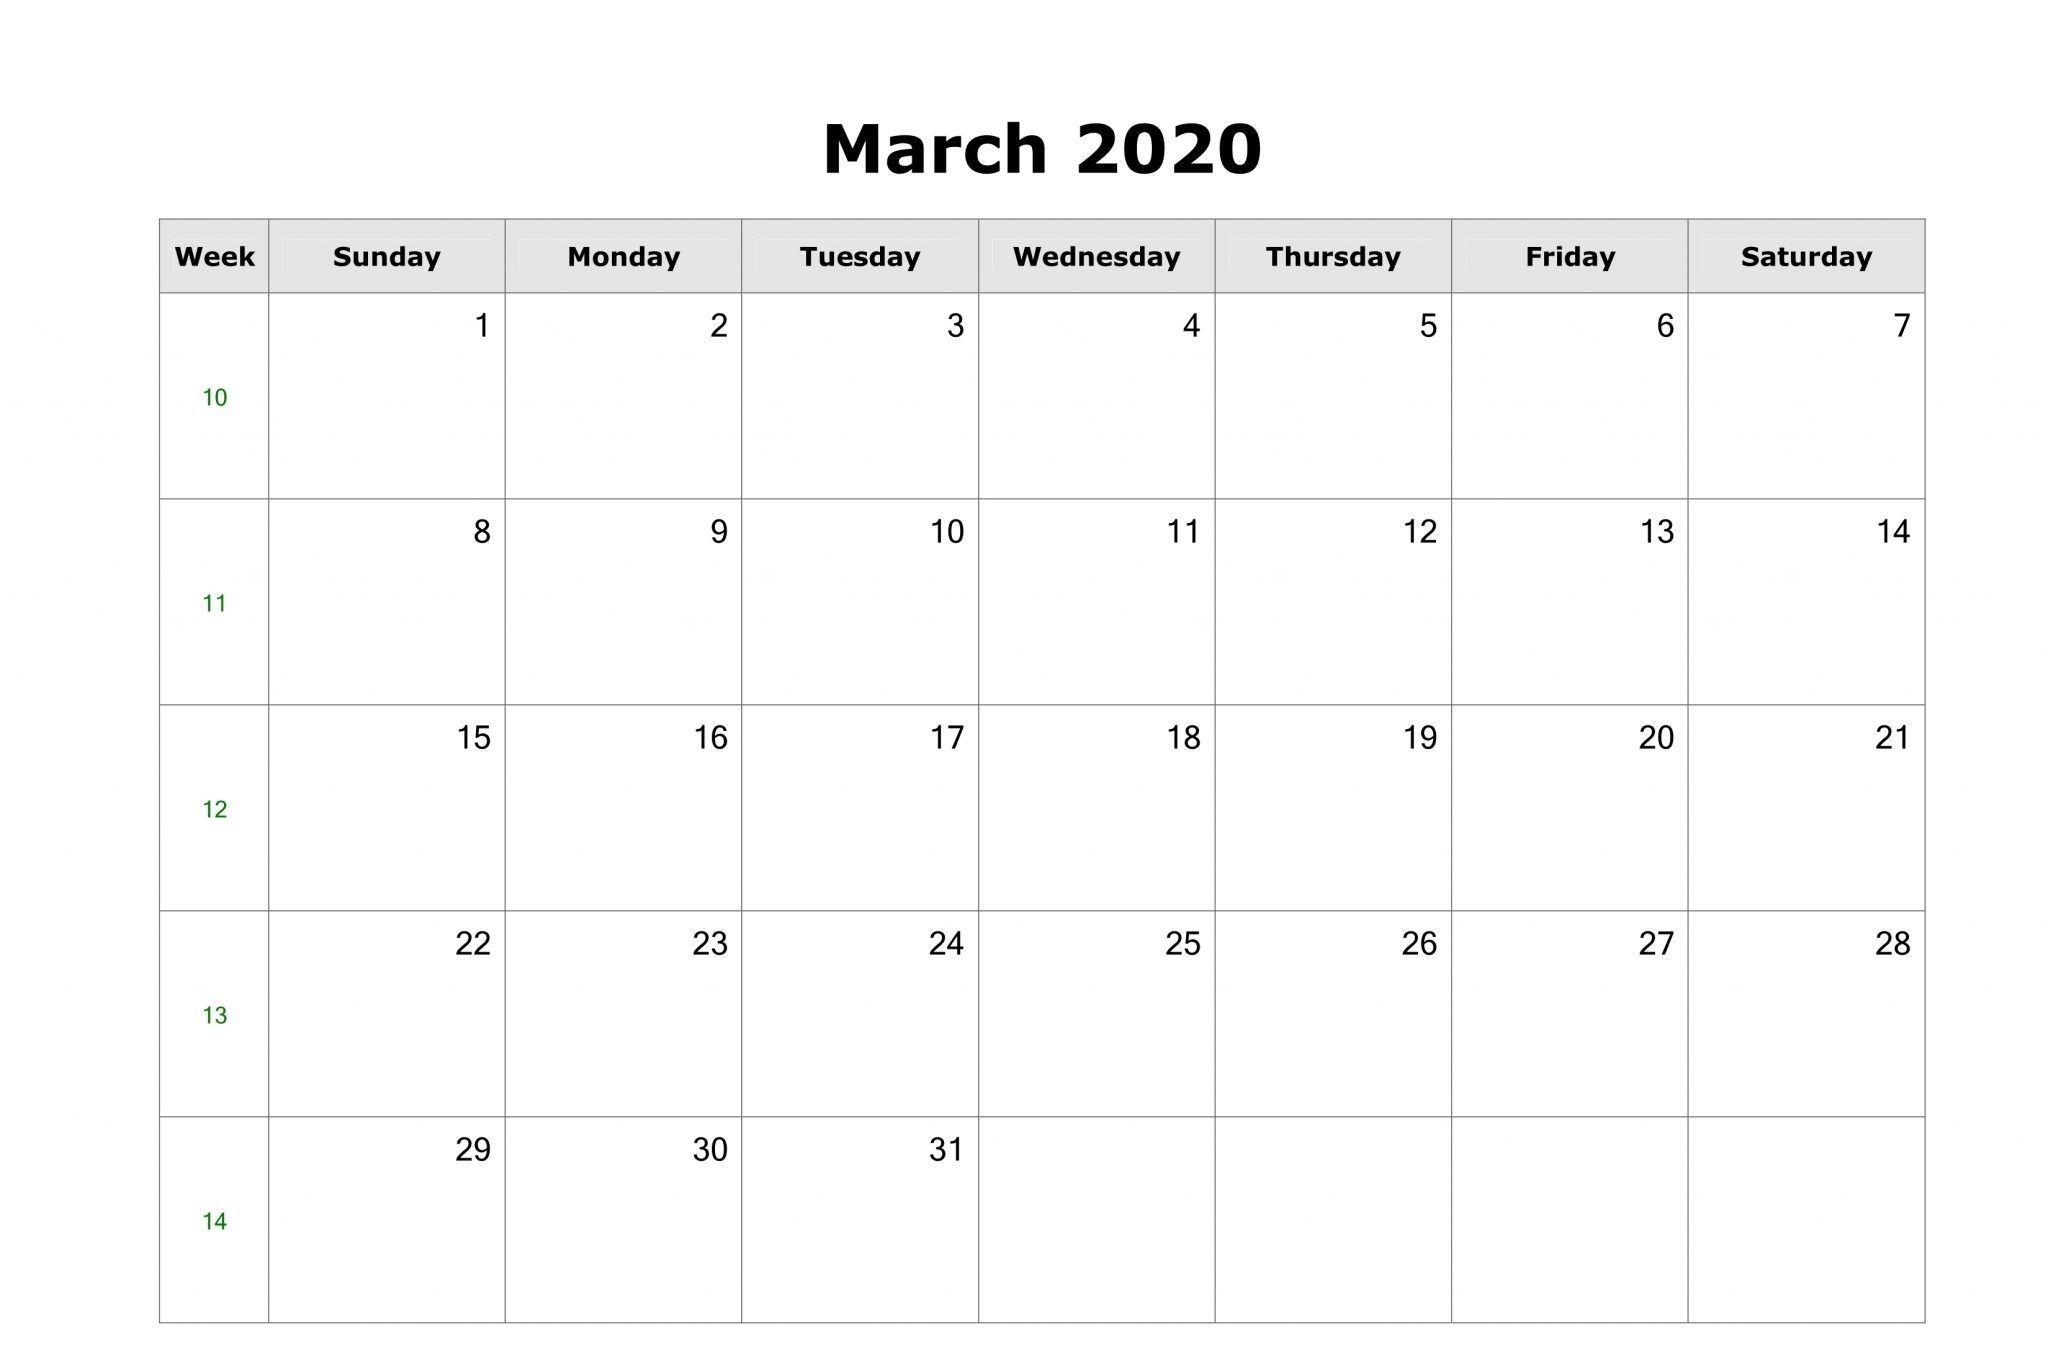 March 2020 Calendar With Holidays Us, Uk, Canada, Australia